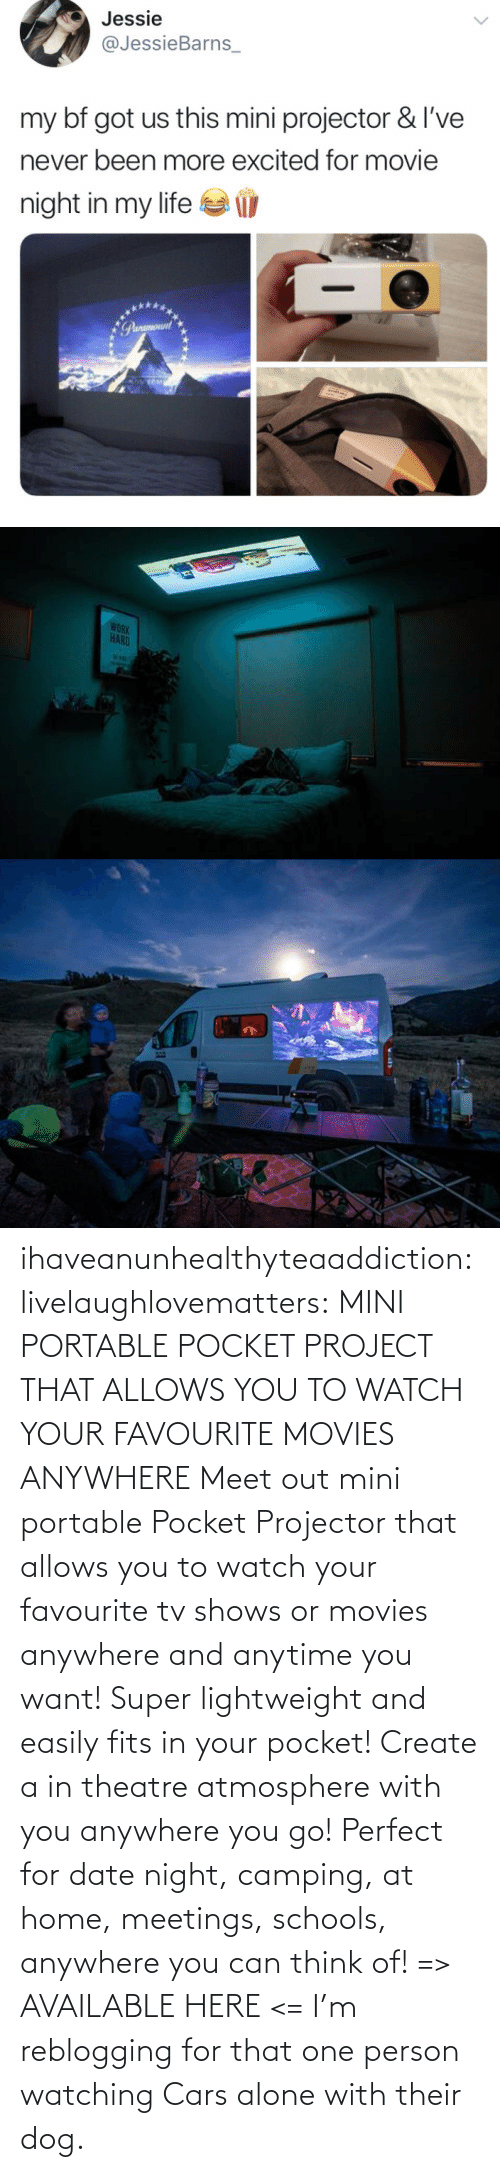 Easily: ihaveanunhealthyteaaddiction:  livelaughlovematters: MINI PORTABLE POCKET PROJECT THAT ALLOWS YOU TO WATCH YOUR FAVOURITE MOVIES ANYWHERE Meet out mini portable Pocket Projector that allows you to watch your favourite tv shows or movies anywhere and anytime you want! Super lightweight and easily fits in your pocket! Create a in theatre atmosphere with you anywhere you go! Perfect for date night, camping, at home, meetings, schools, anywhere you can think of! => AVAILABLE HERE <=    I'm reblogging for that one person watching Cars alone with their dog.